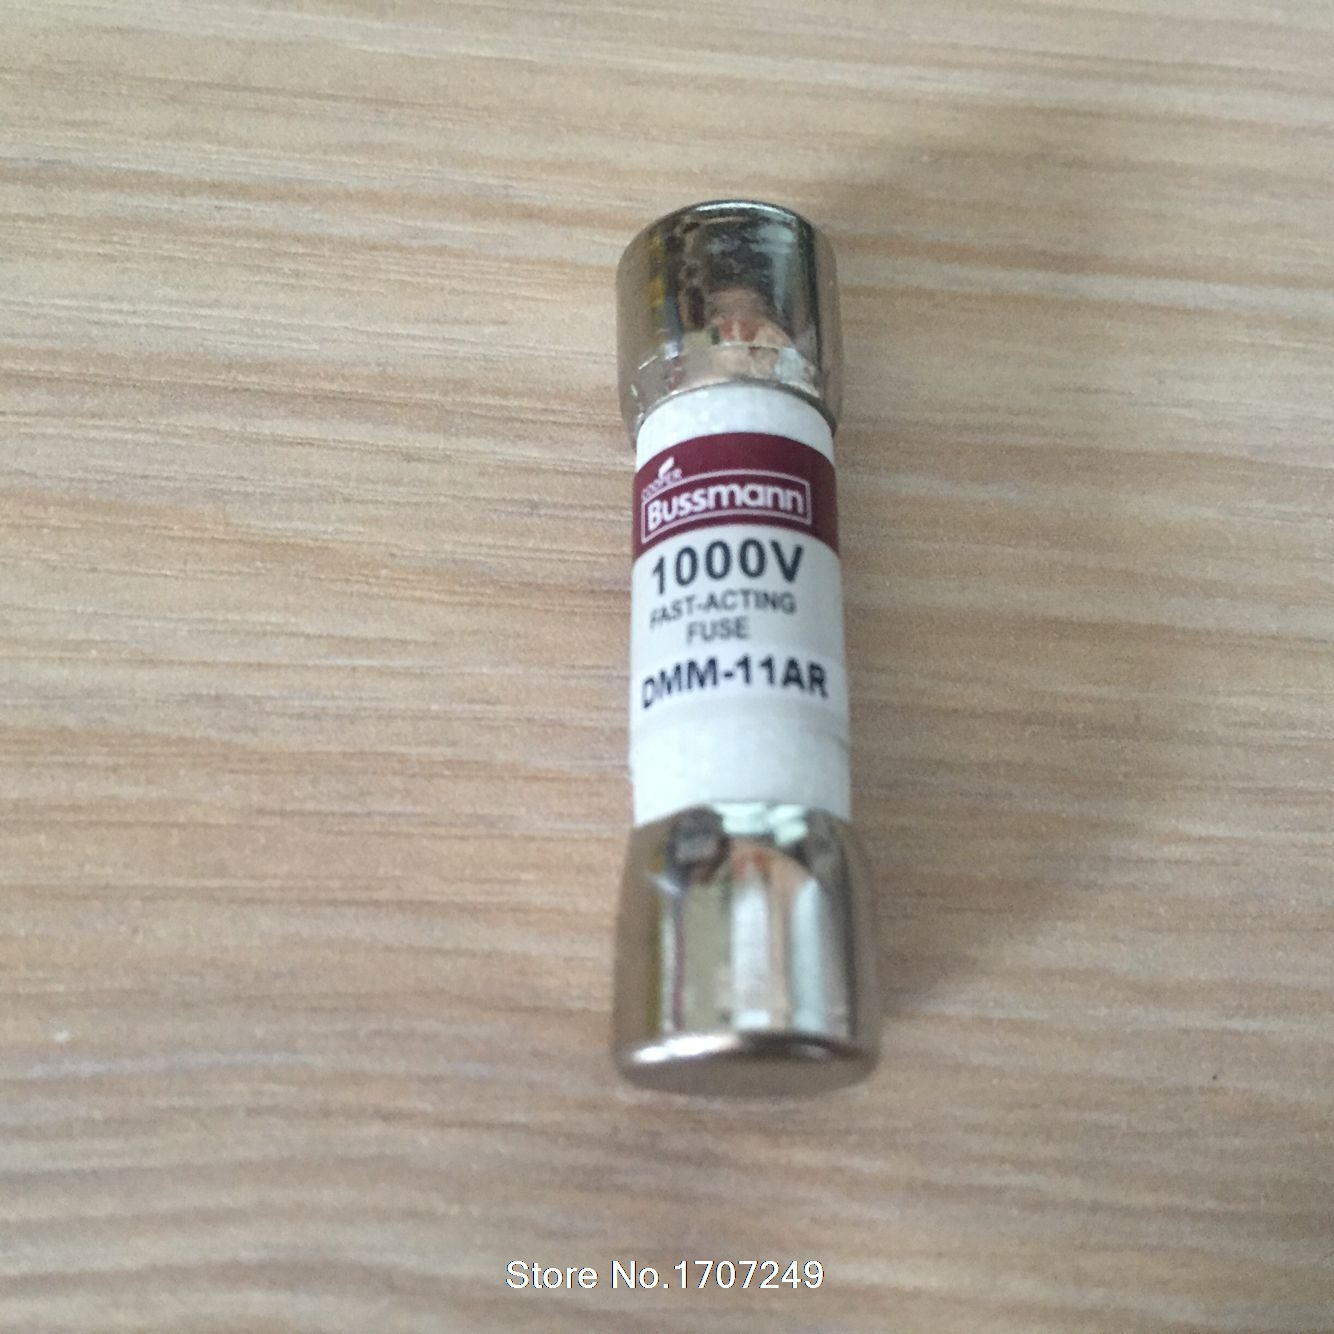 1 Pcs BUSS DMM-B-11A DMM-11AR 10x38mm 1000V 11A Ceramic fuse DMM with Fuse for FLUKE Multimeter F175/F177/F179/F287/F289 тестер fluke t5 1000